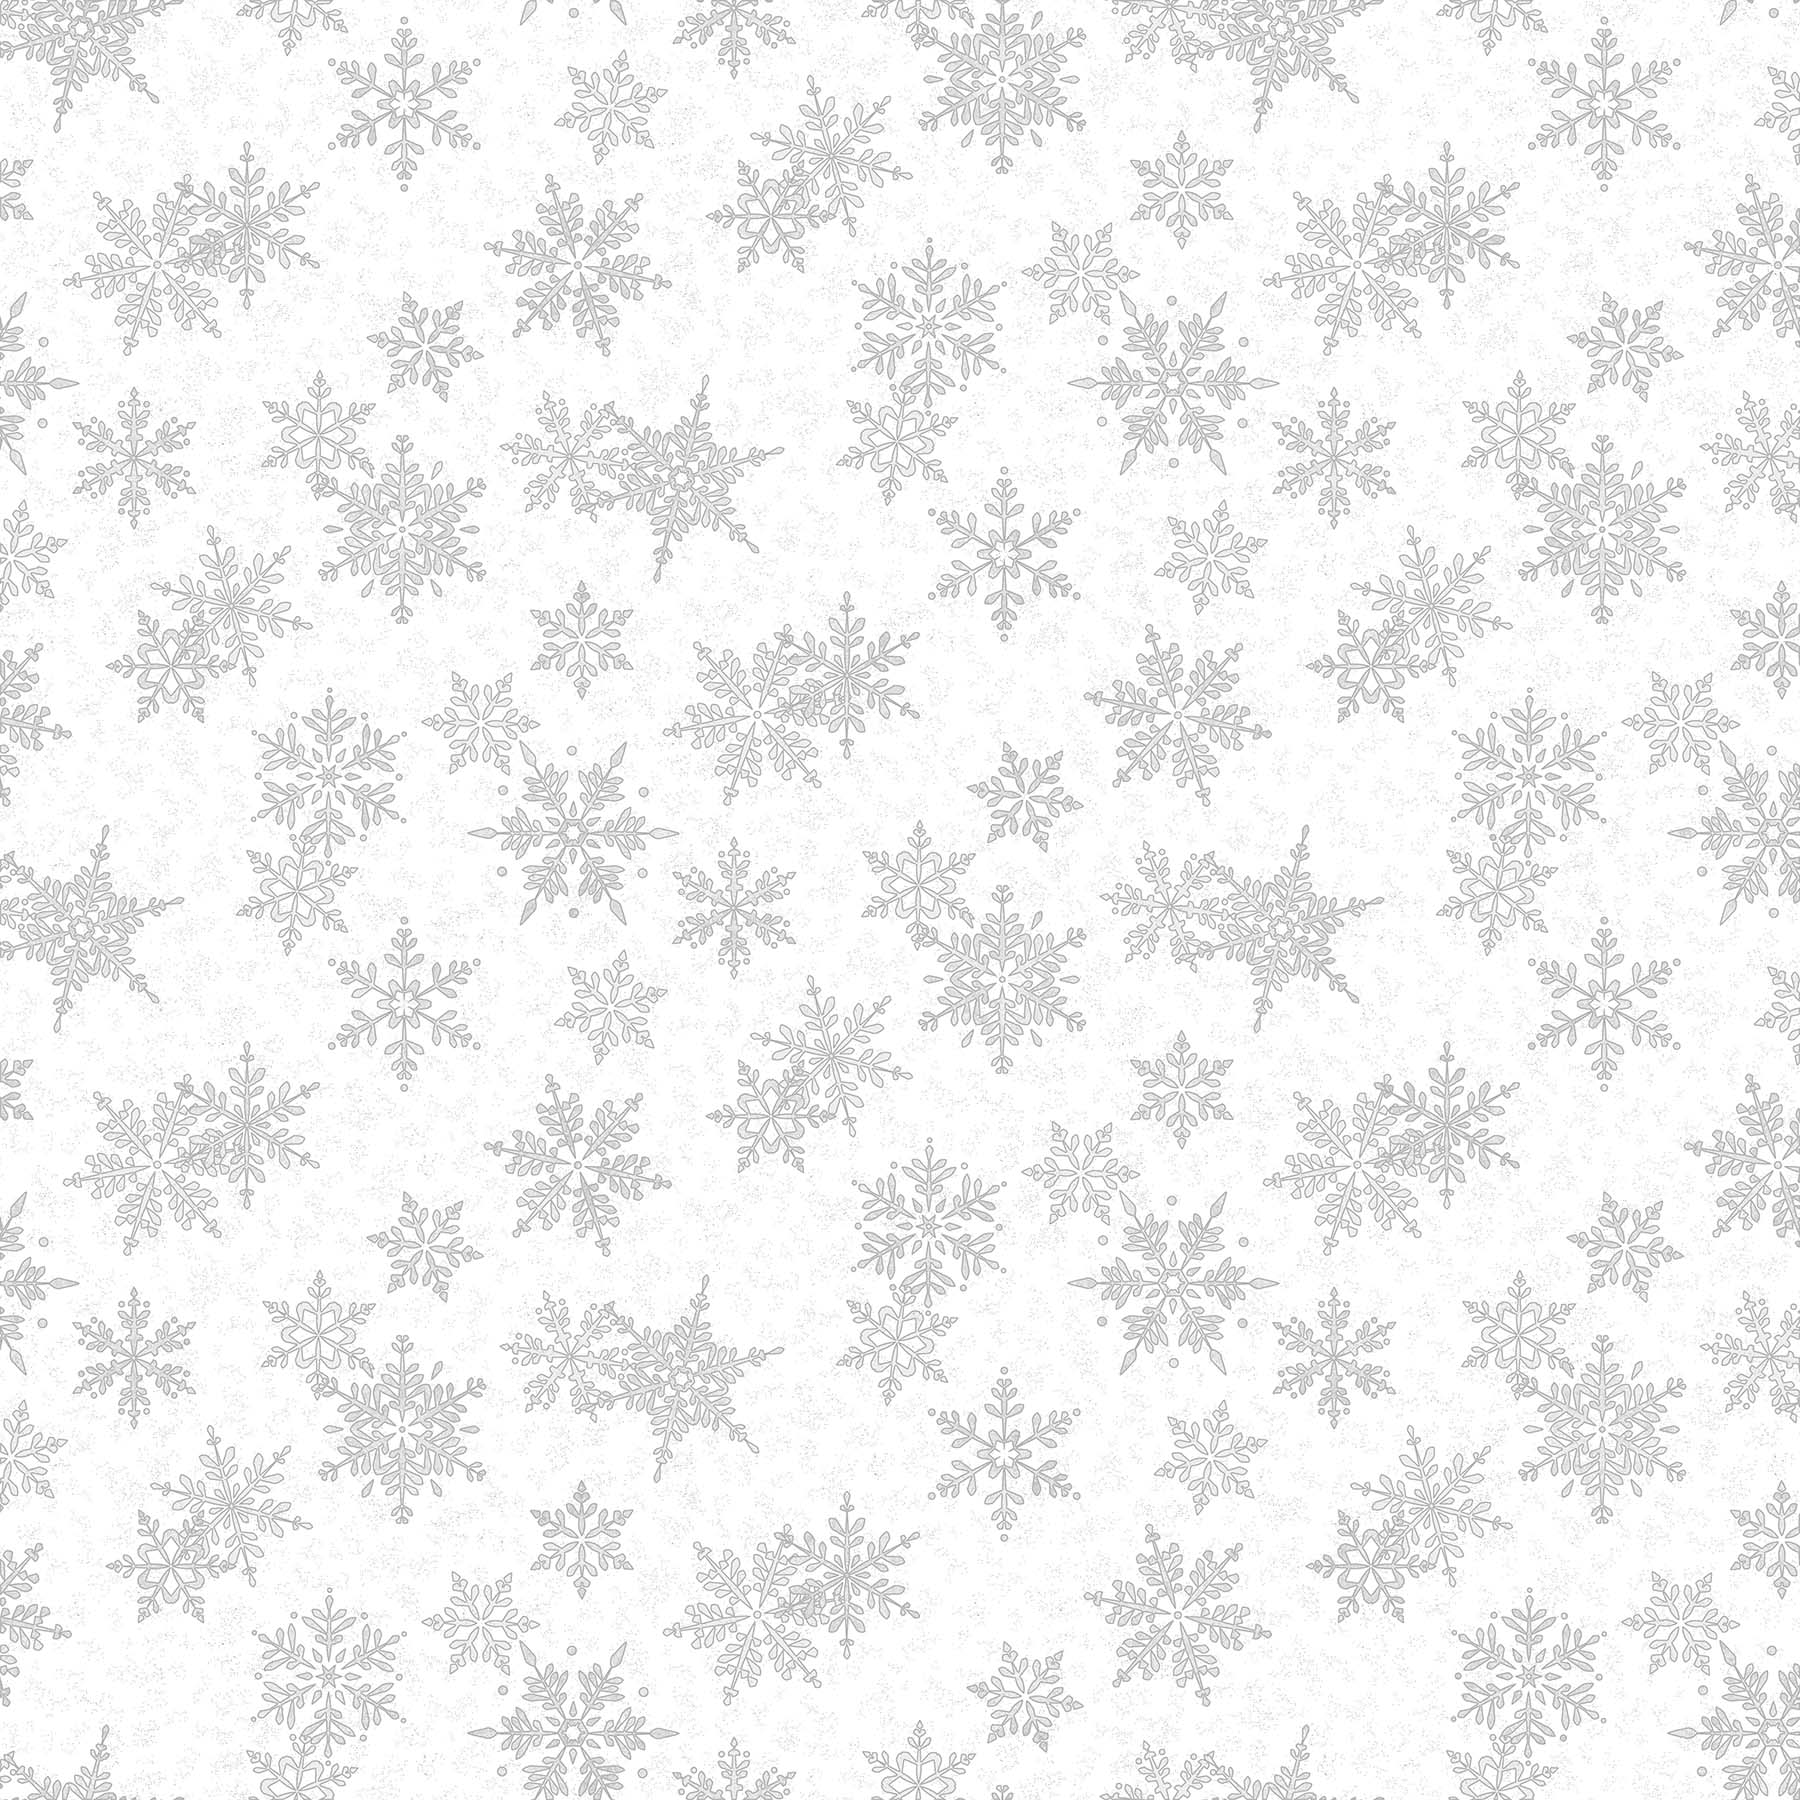 Large Snowflakes White/Silver<br/>Northcott 24195M-90